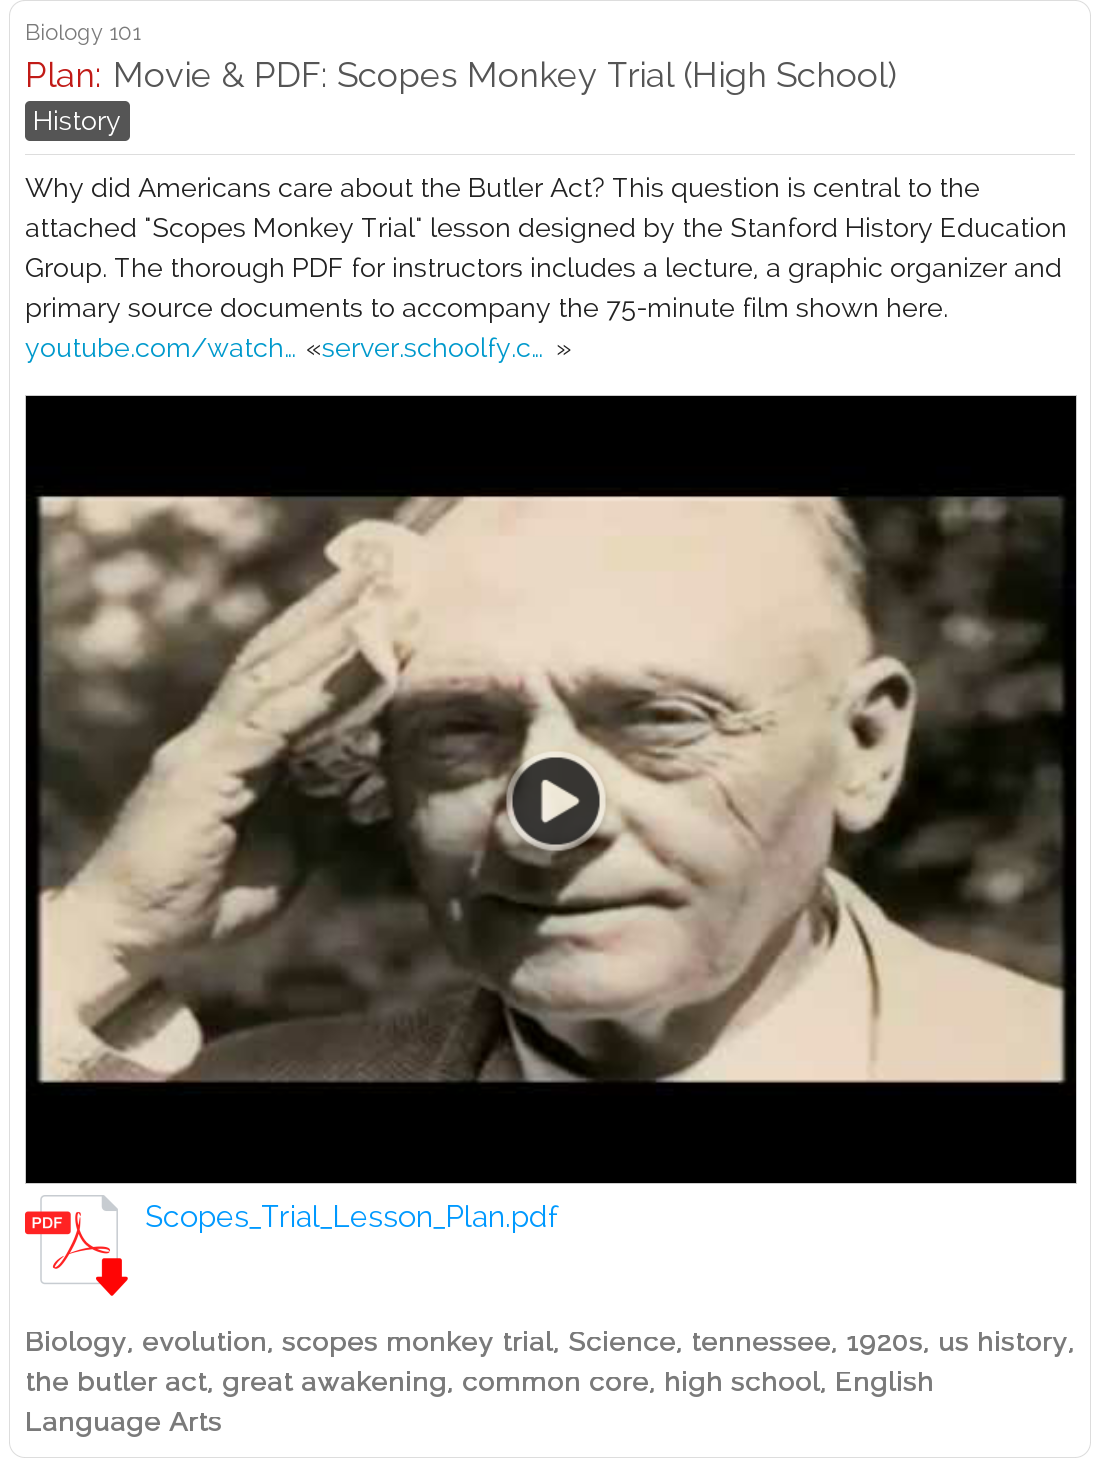 Free Online Movie PDF History Lesson Plan - Scopes Monkey